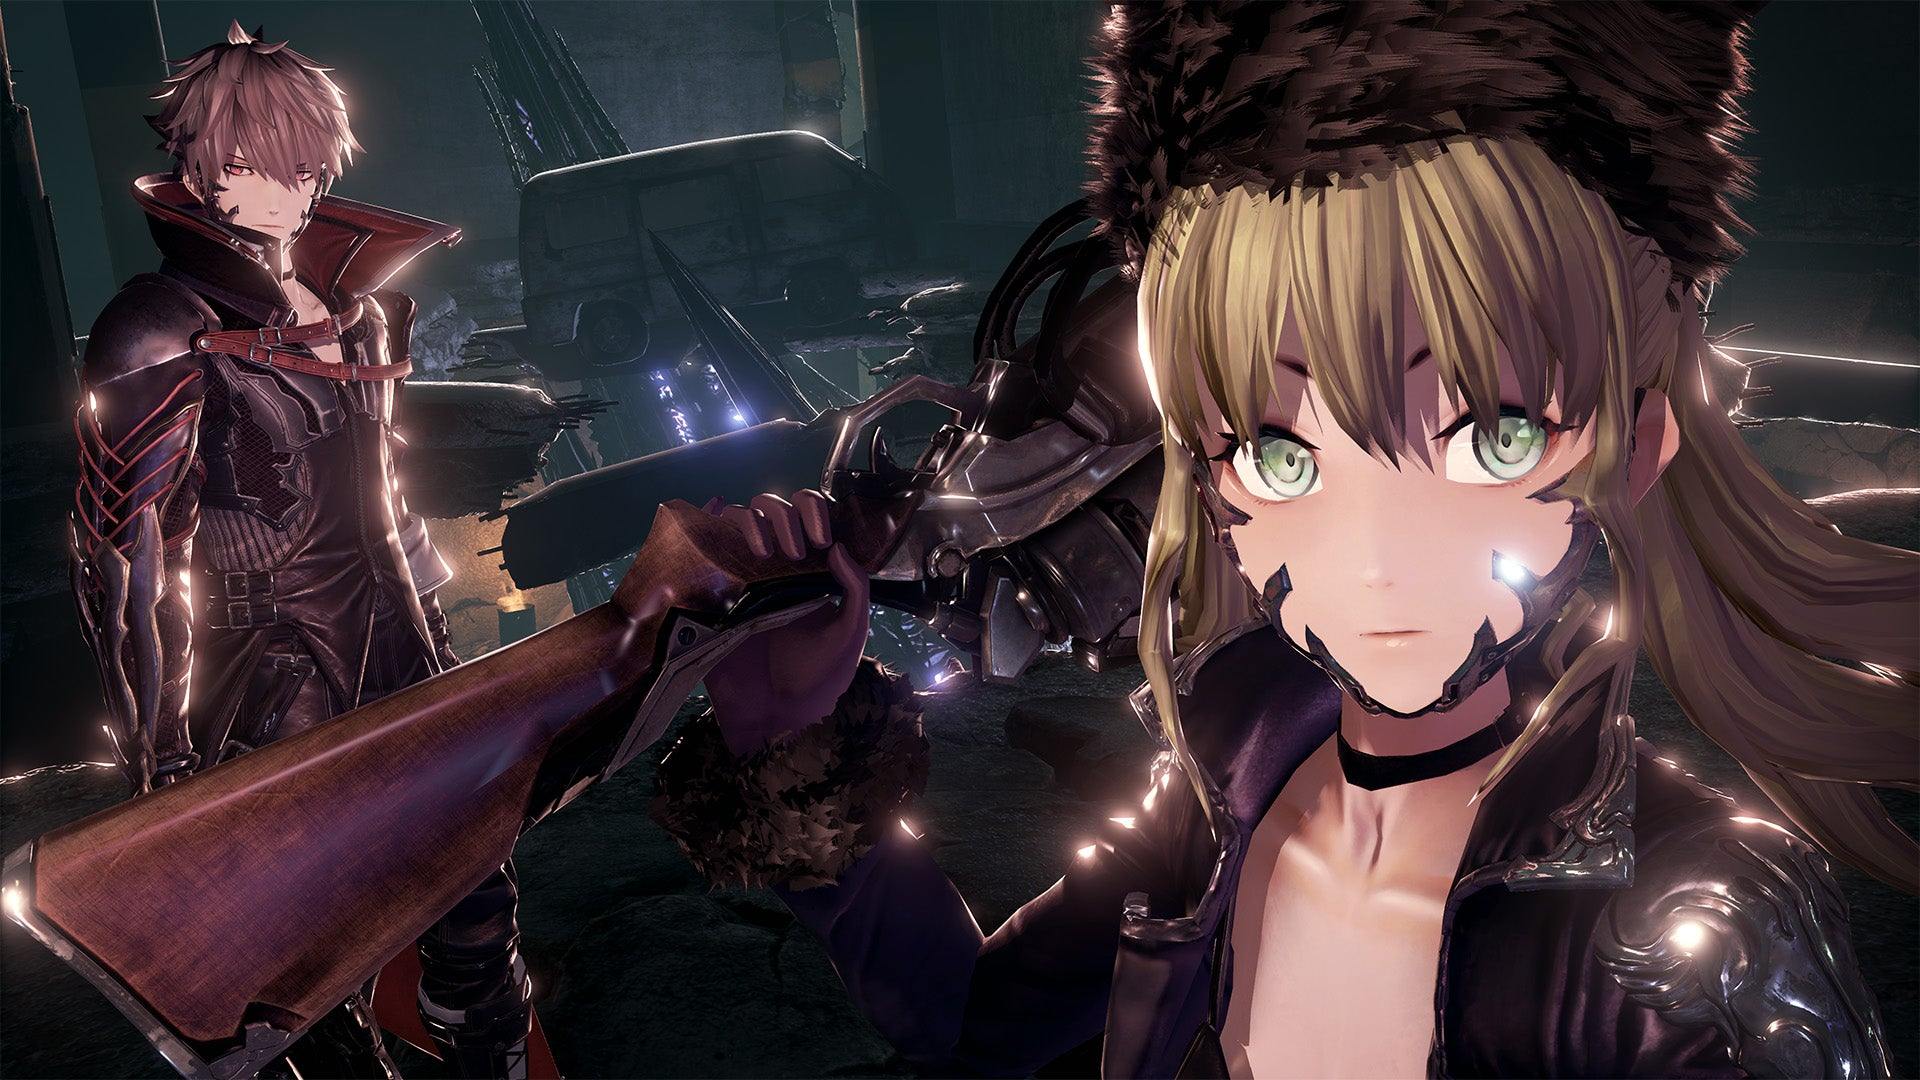 Bandai Namco Announces Code Vein, Which Is Certainly A Video Game